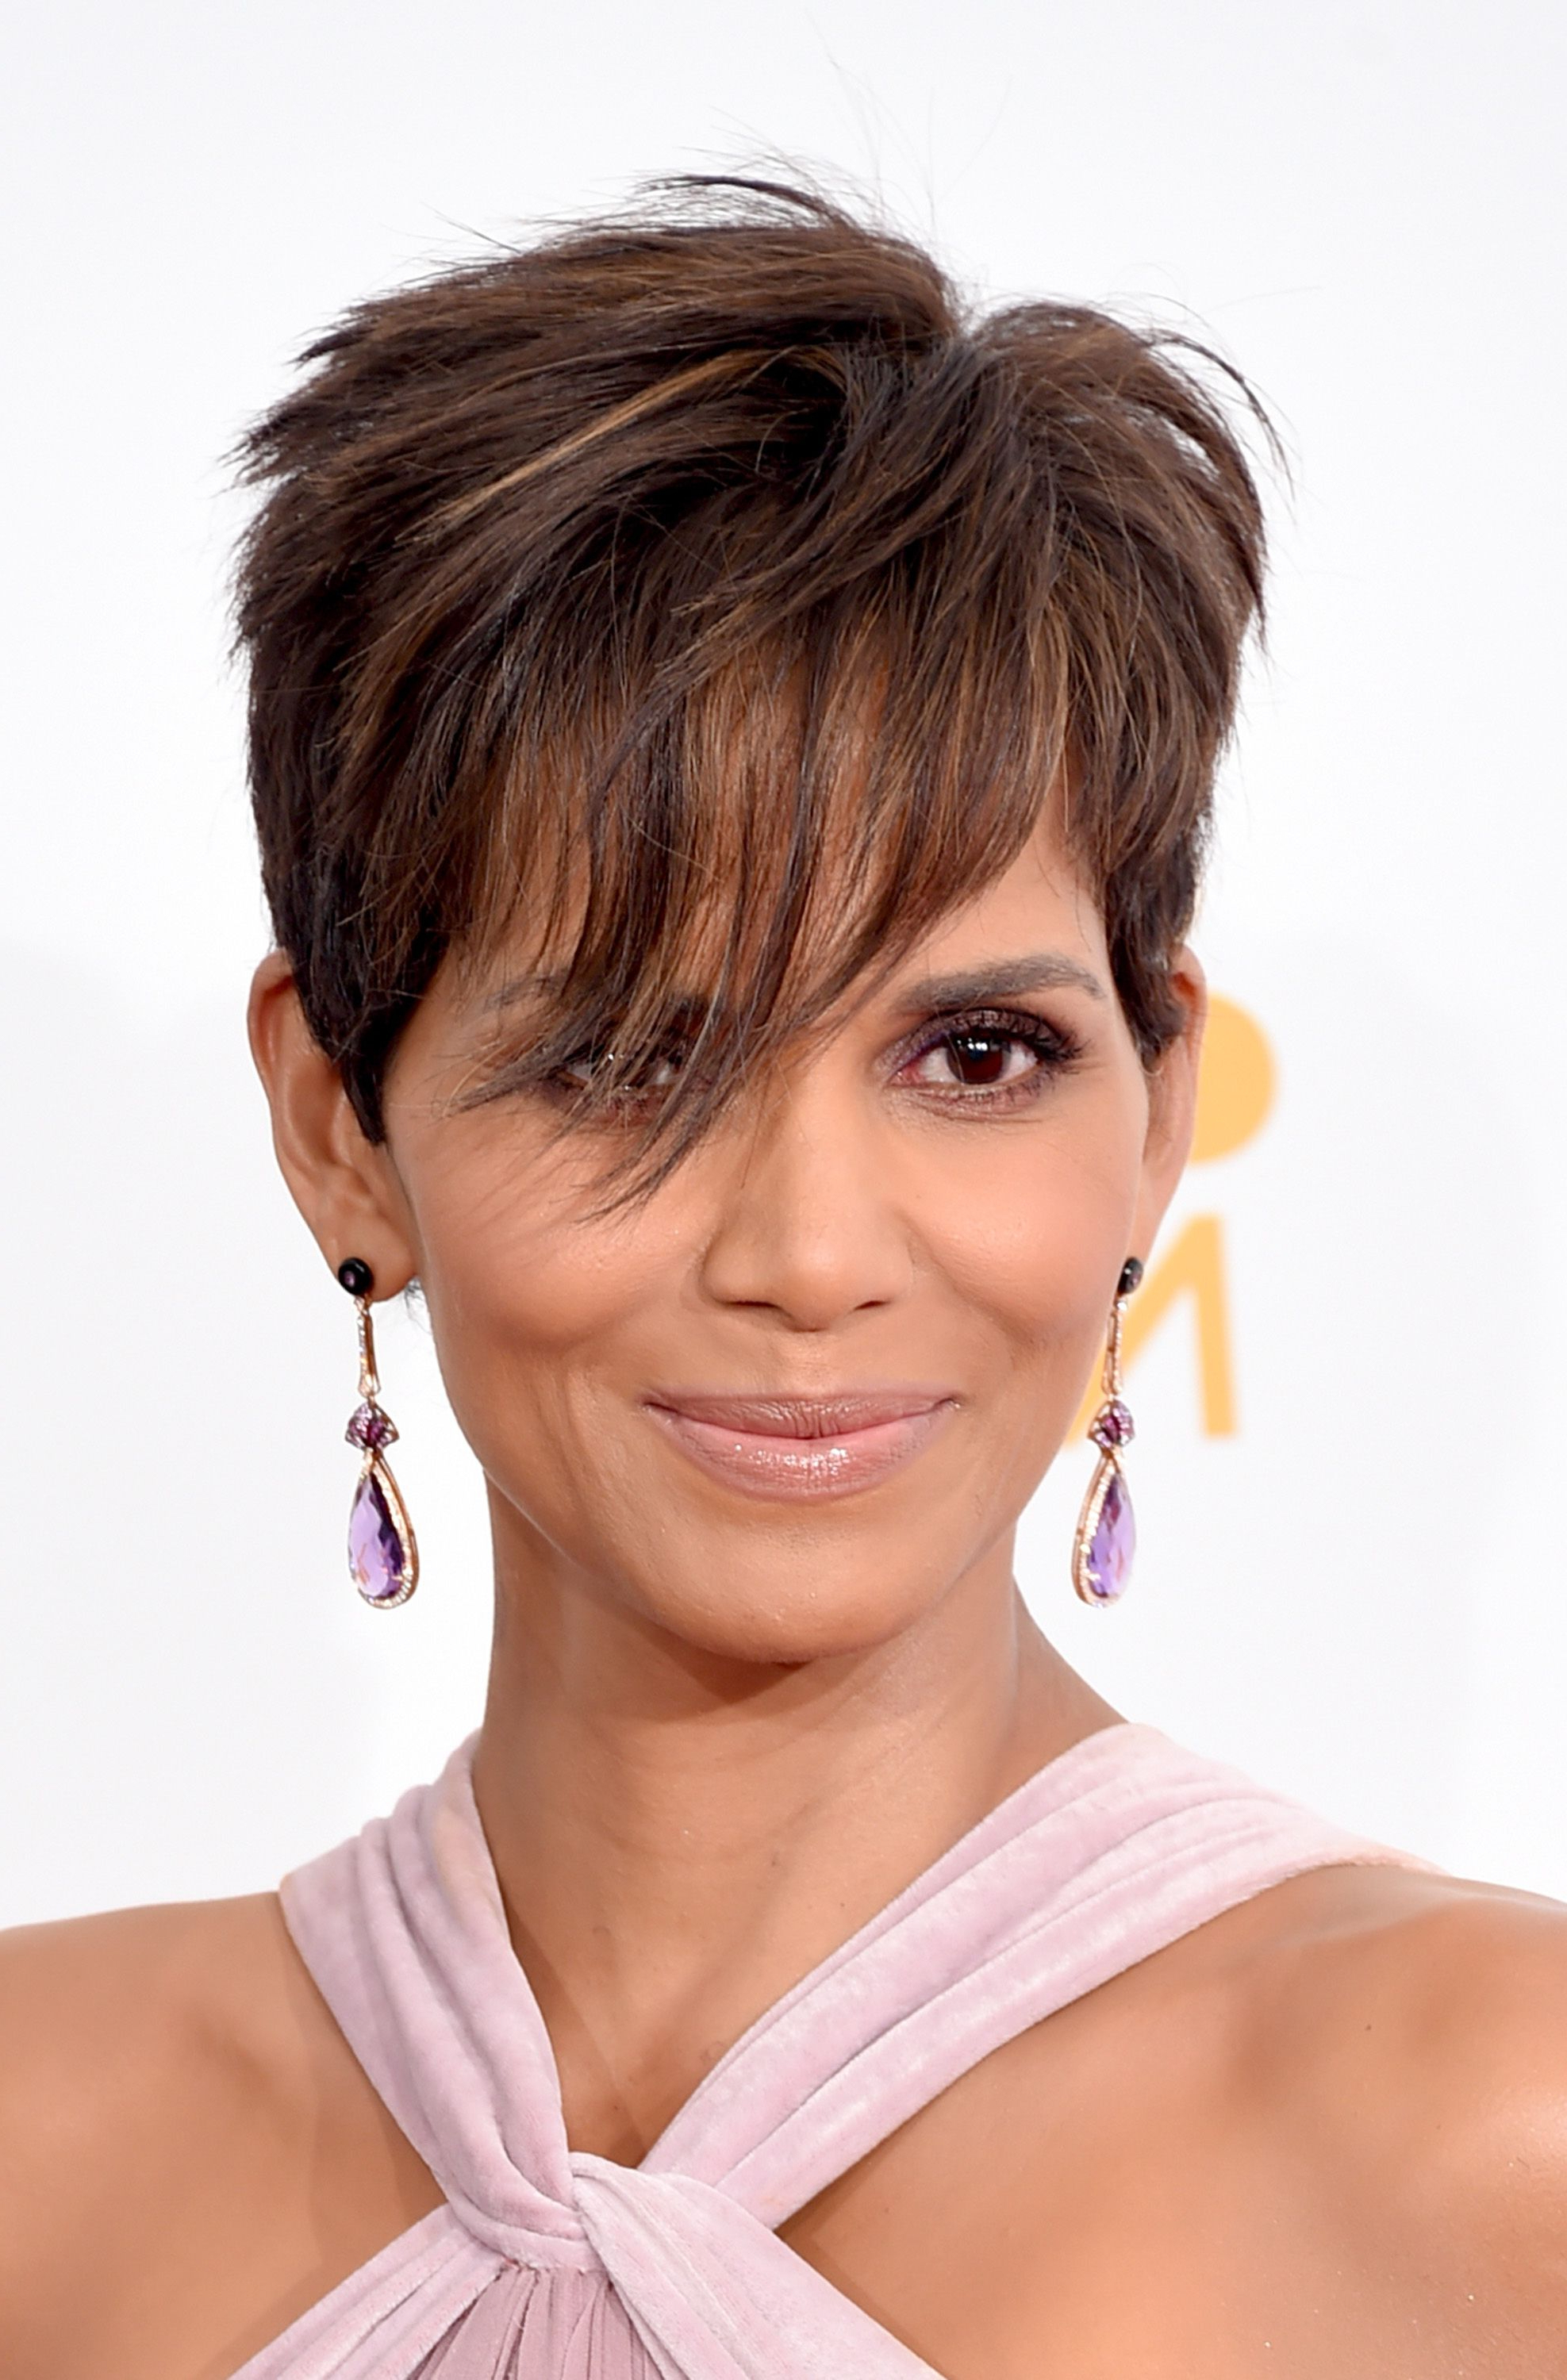 40 Best Short Pixie Cut Hairstyles 2019 – Cute Pixie With Regard To Highlighted Pixie Hairstyles (View 3 of 20)